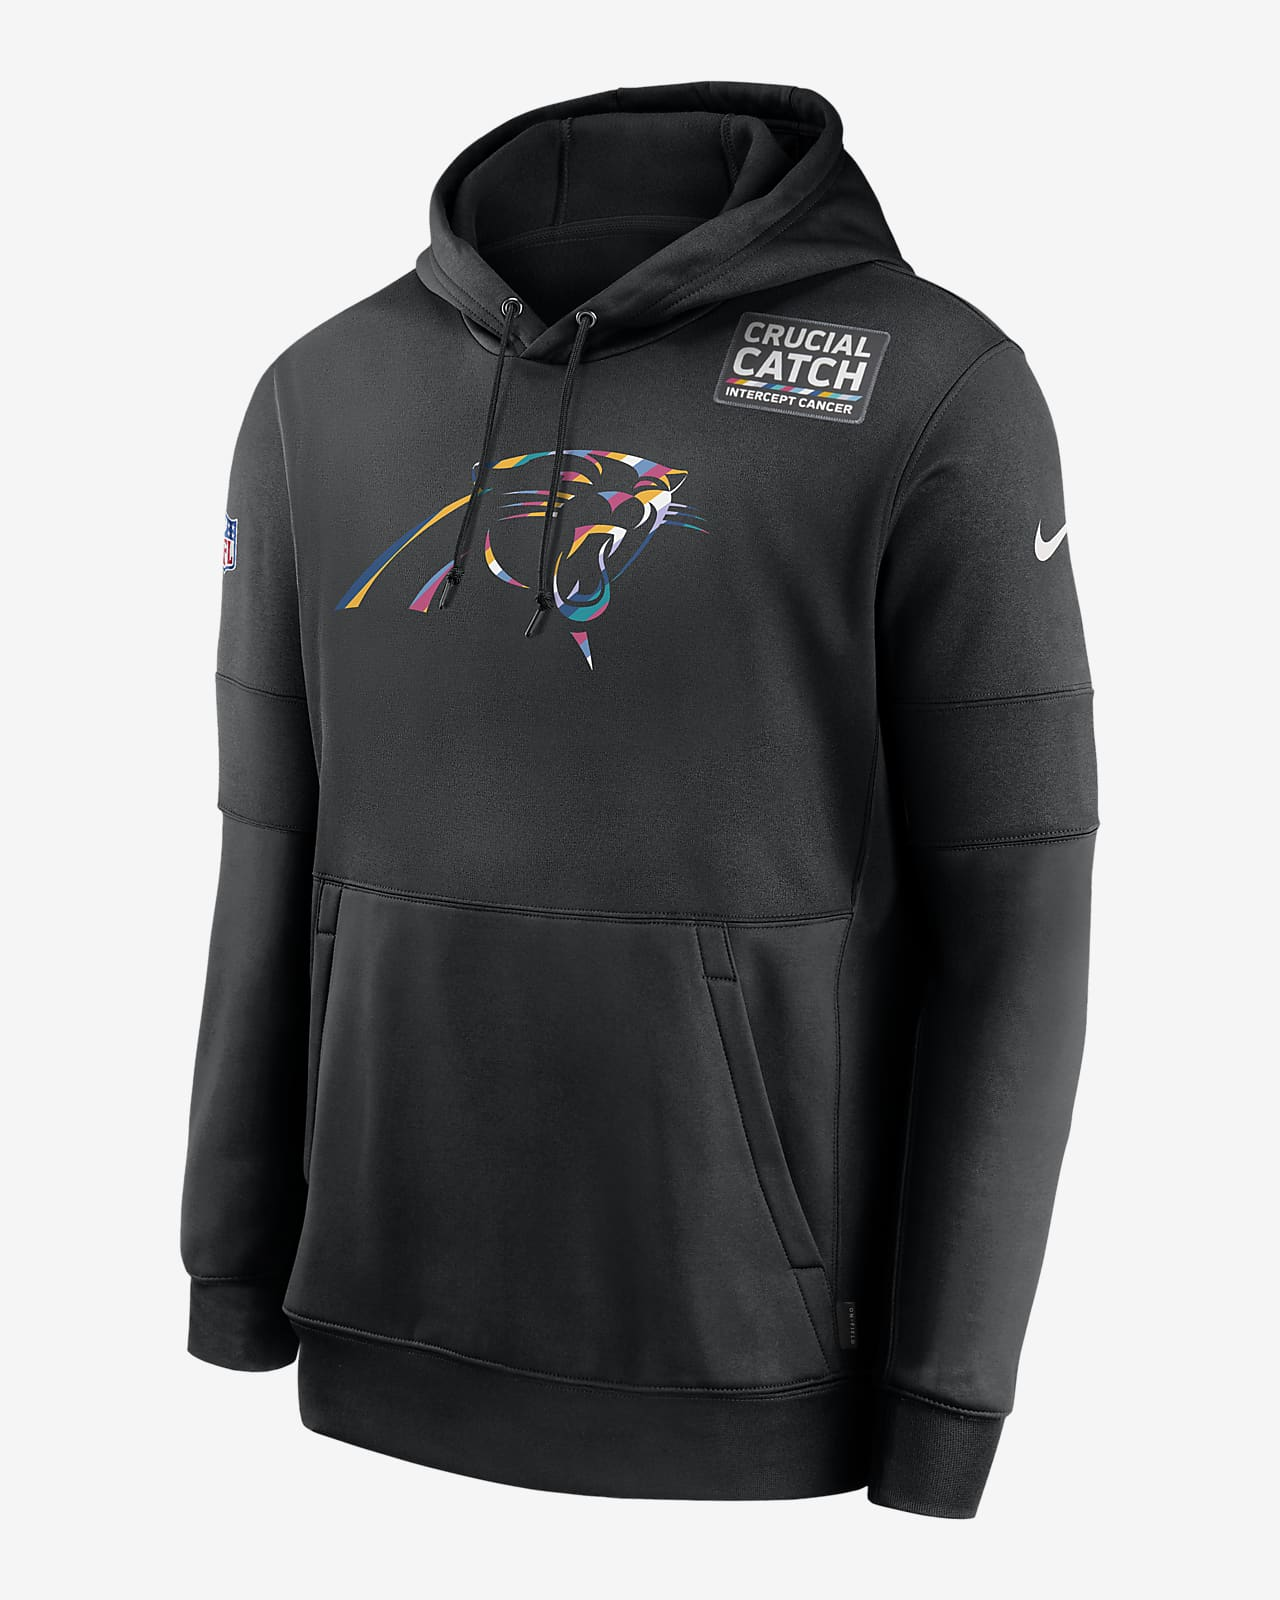 Nike Therma Crucial Catch (NFL Panthers) Men's Hoodie